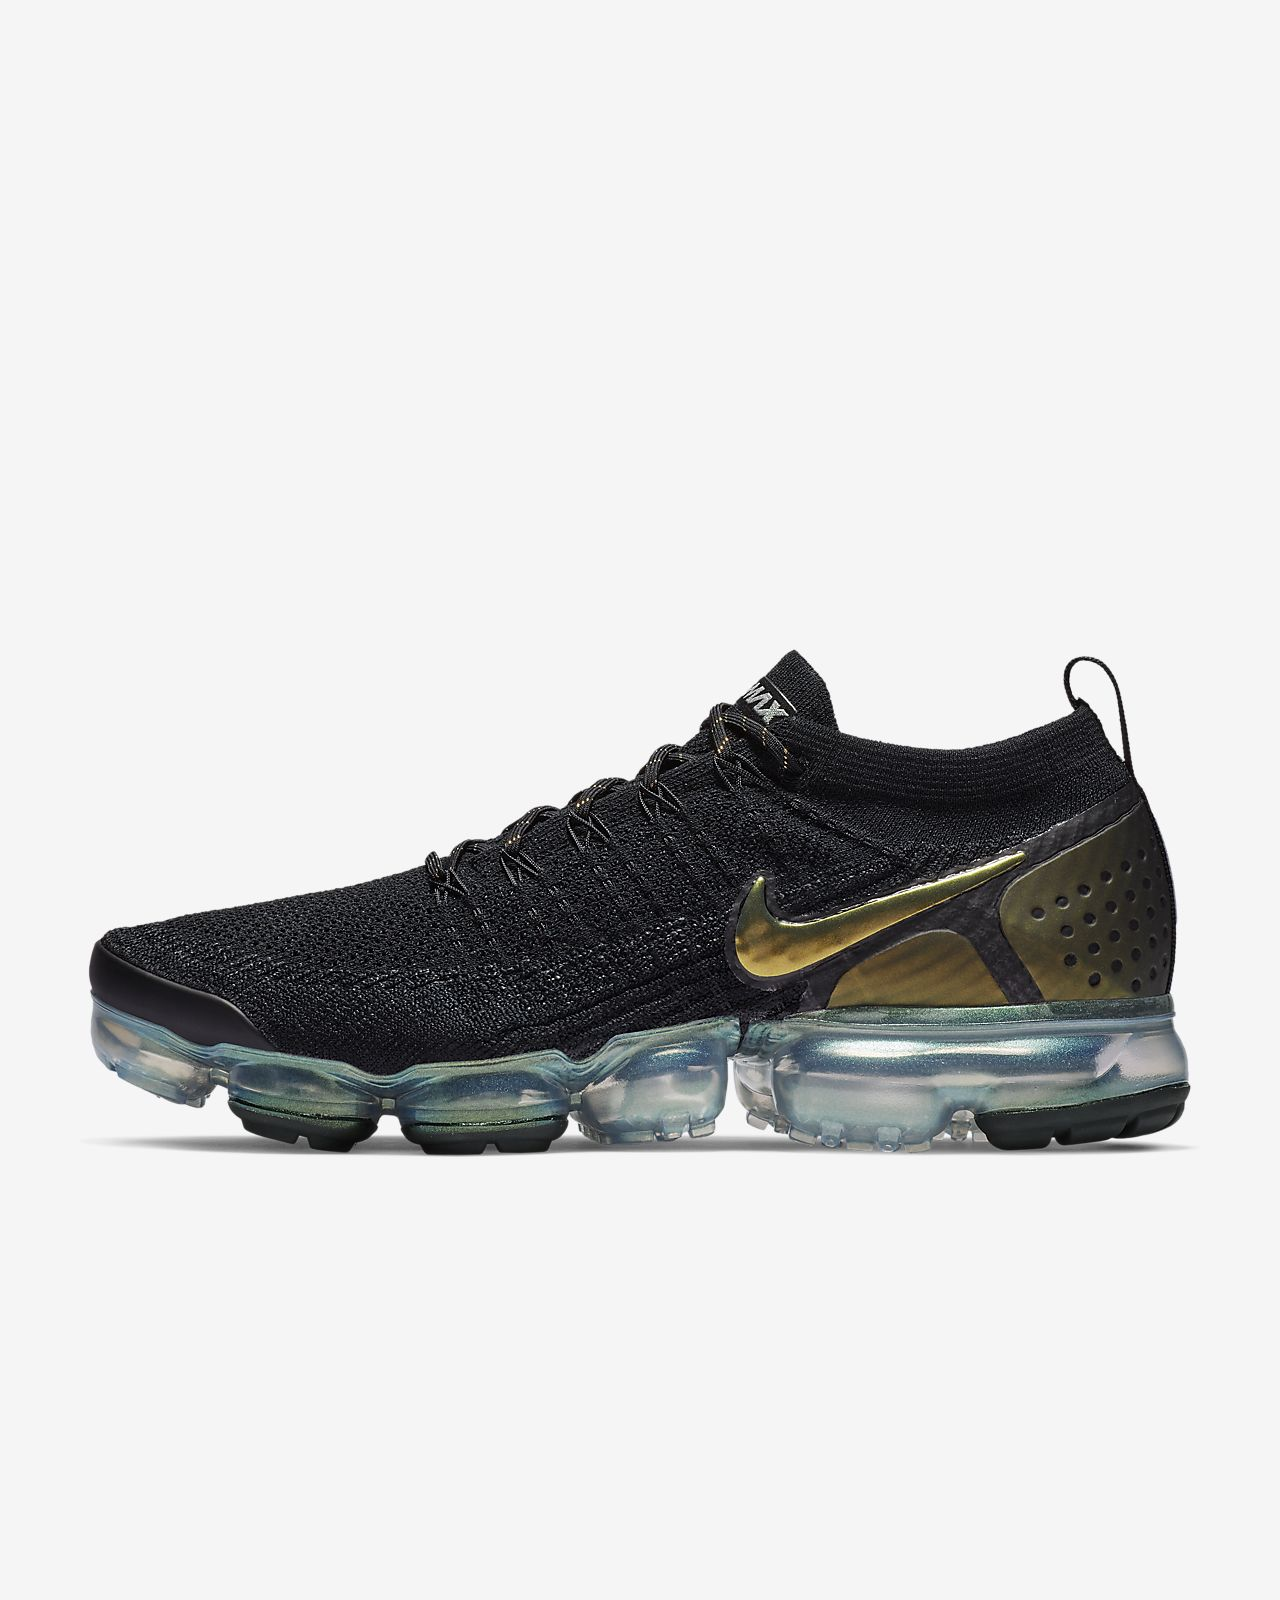 new product 0c7c9 3a53c ... Nike Air VaporMax Flyknit 2 Schuh